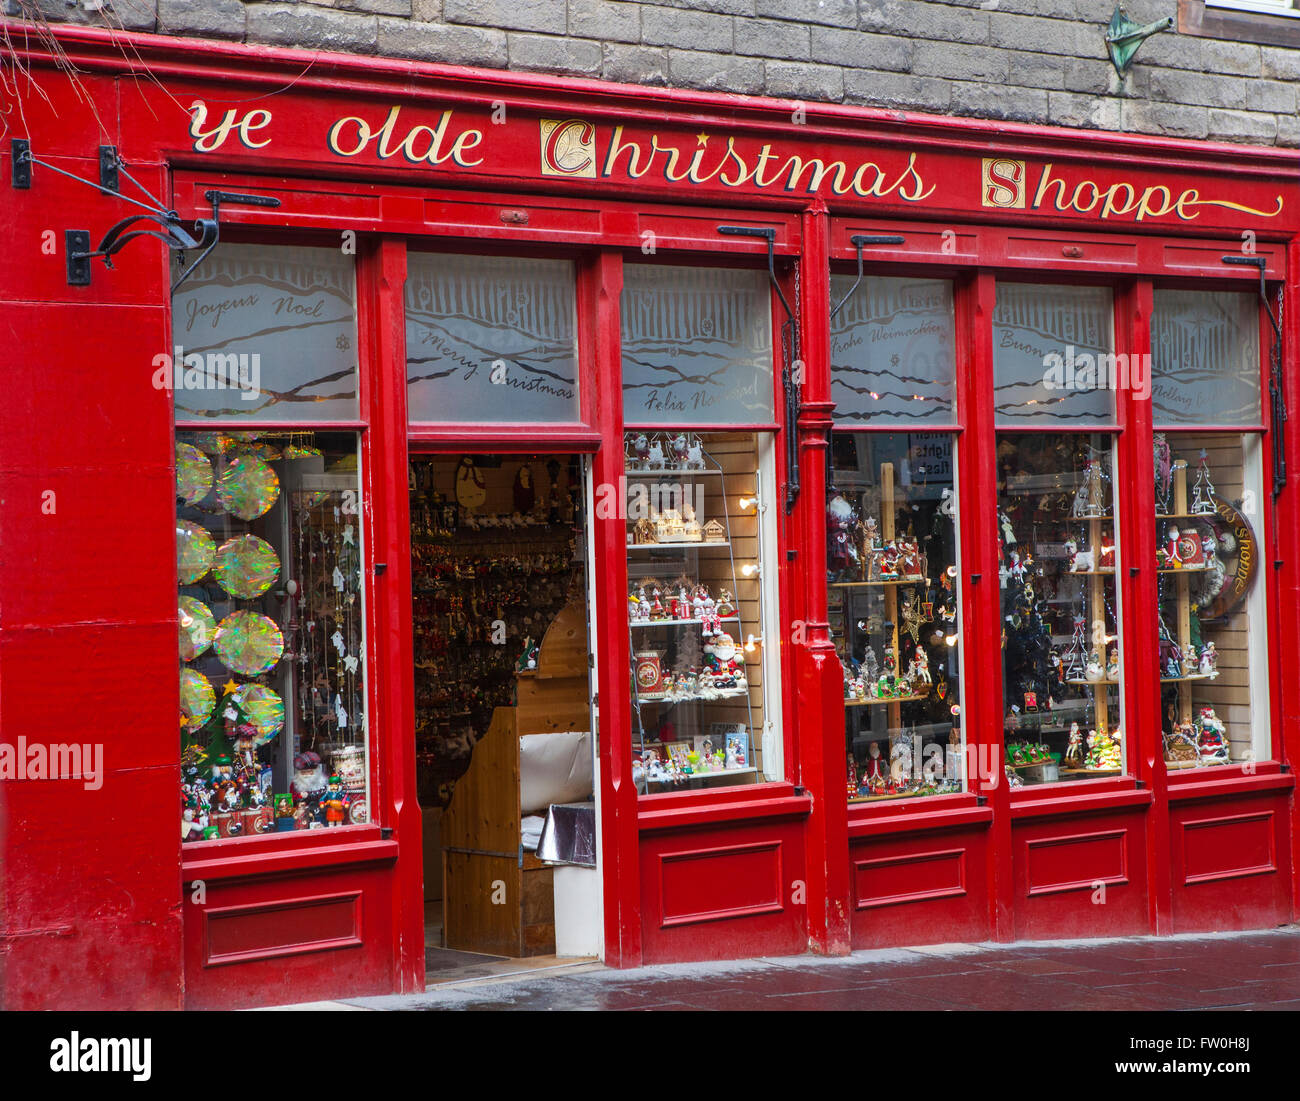 EDINBURGH, SCOTLAND - MARCH 12TH 2016: Ye Olde Christmas Shoppe situated on Canongate in Edinburgh, on 12th March Stock Photo